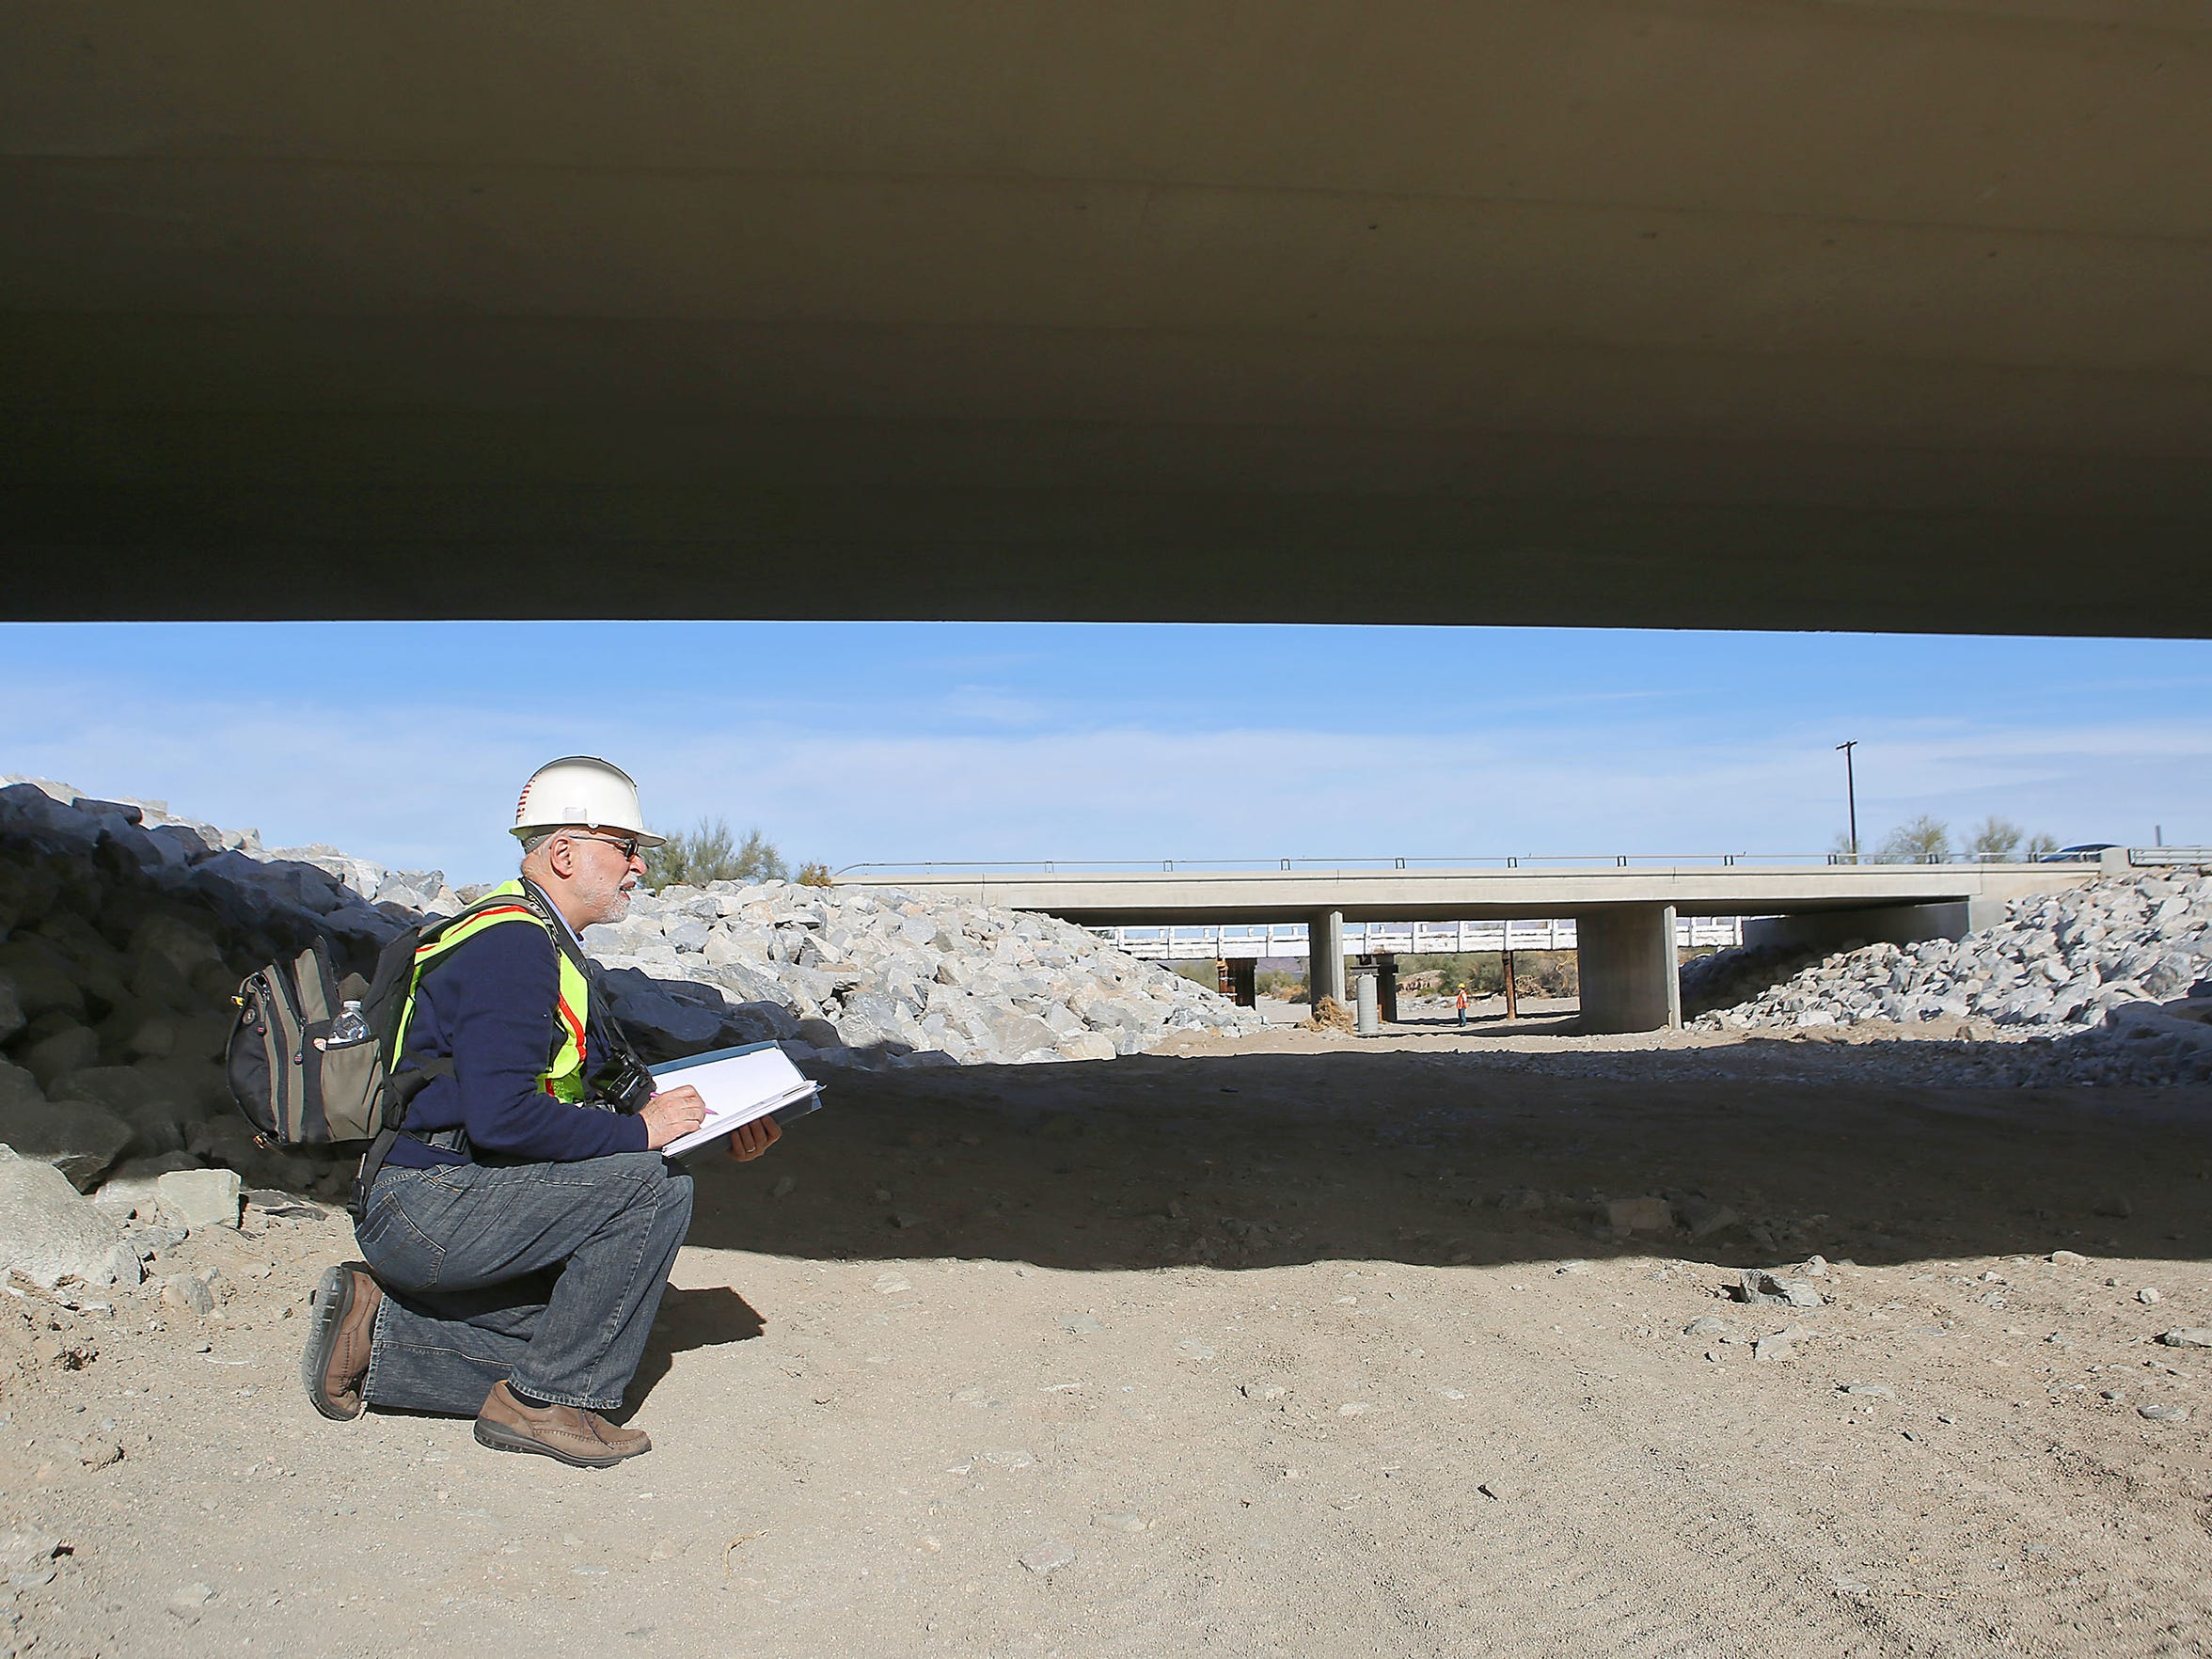 Abolhassan Astaneh-Asl, UC Berkeley professor of engineering and nationally-recognized expert on failed structures, examines the rebuilt Tex Wash Bridge near Desert Center, December 21, 2015.